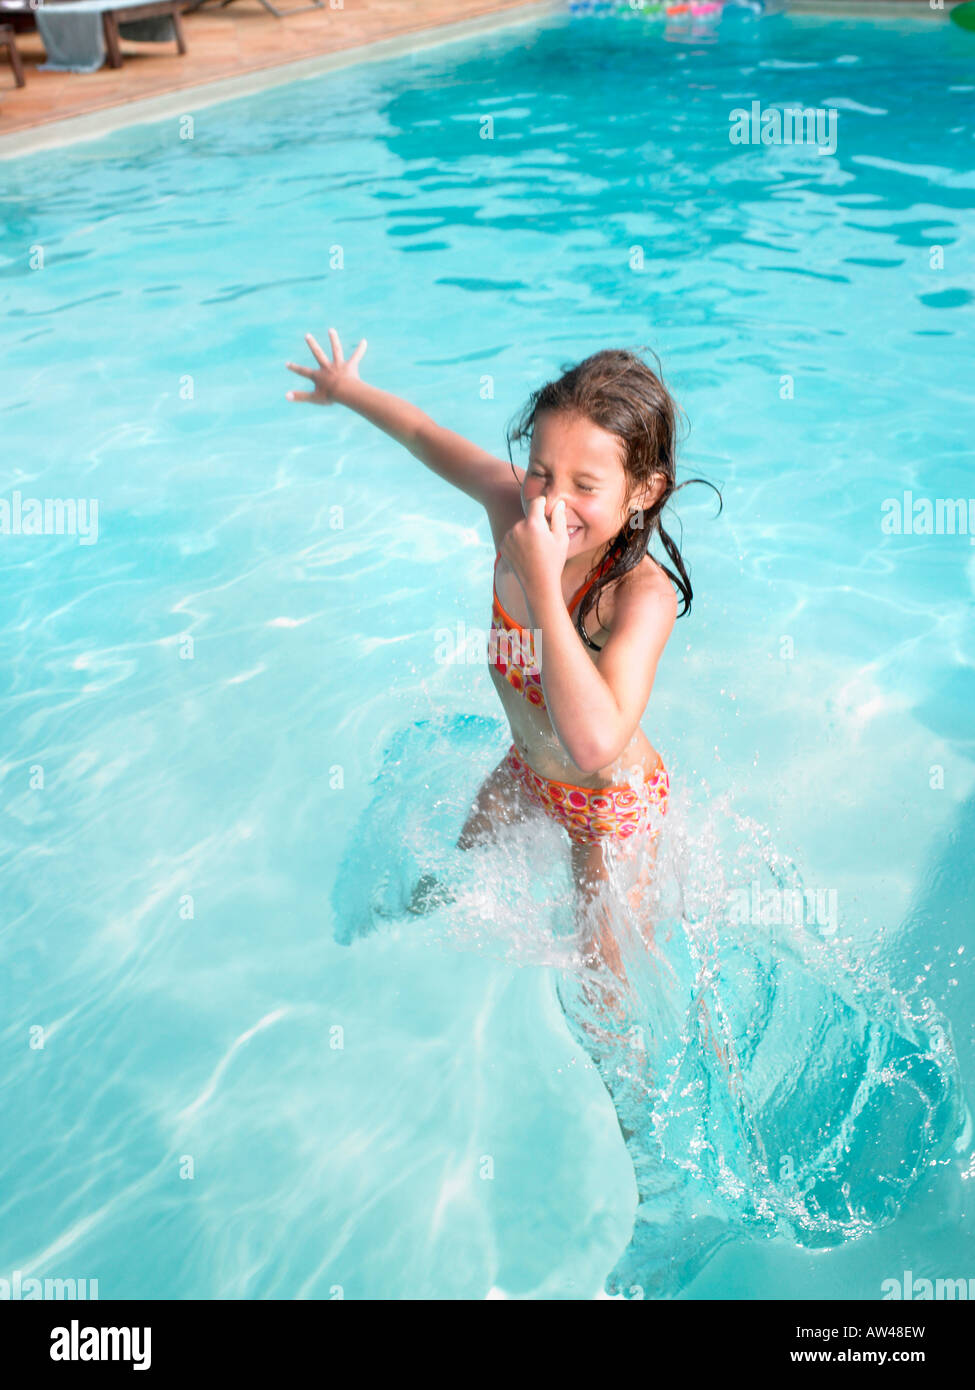 Girl jumping in swimming pool. Stock Photo